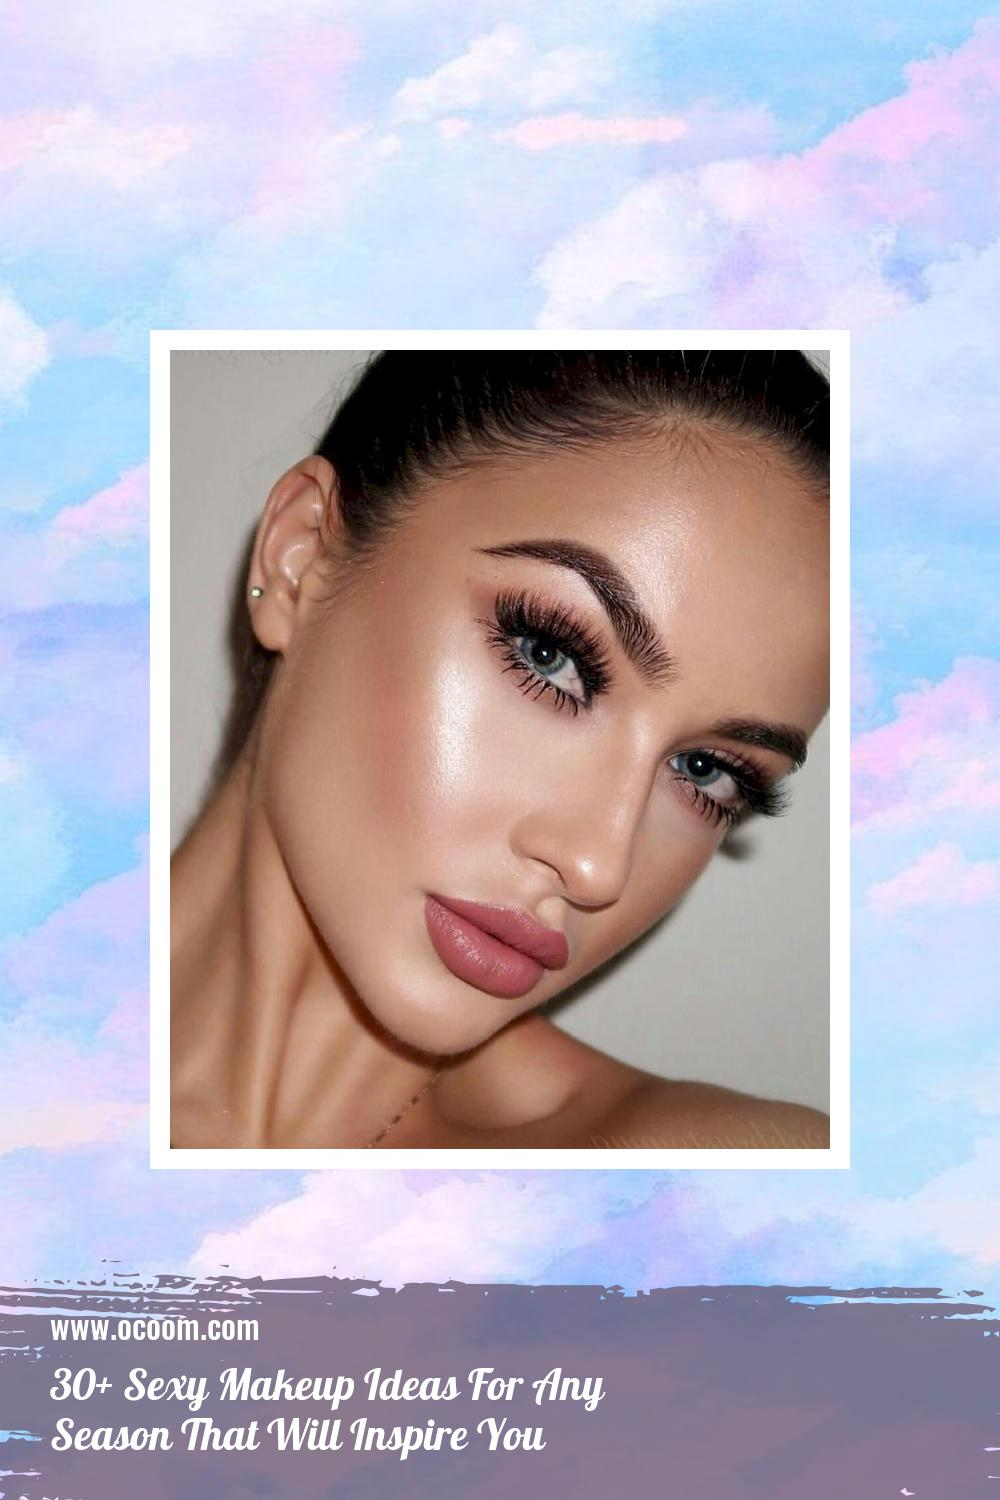 30+ Sexy Makeup Ideas For Any Season That Will Inspire You 7